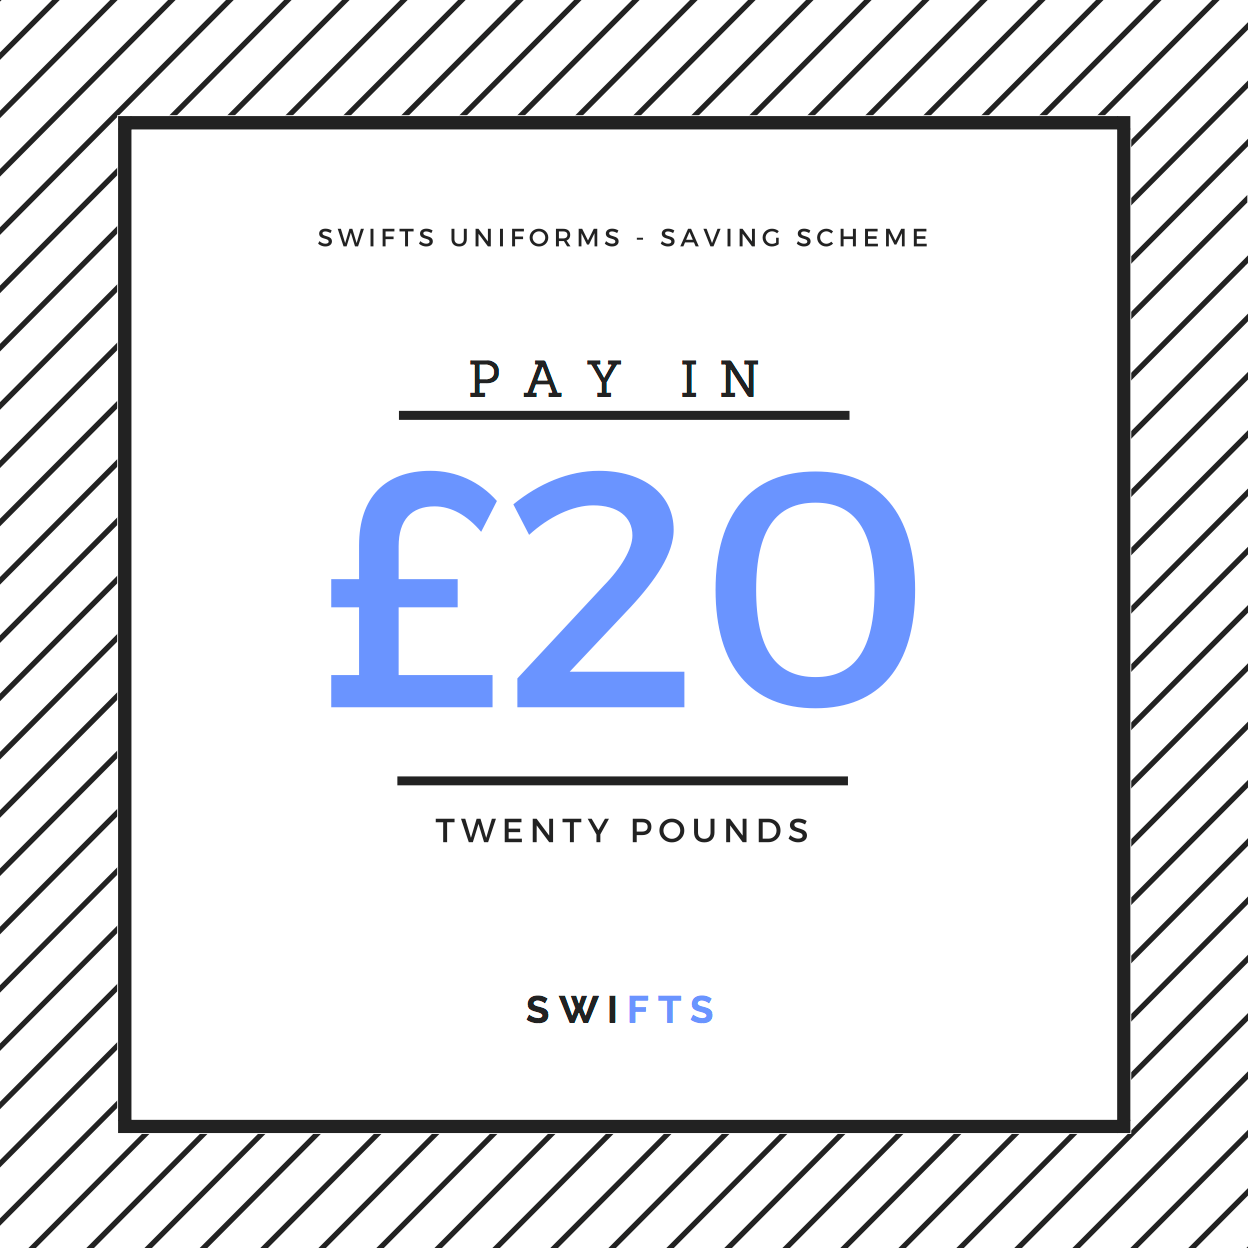 Add £20 - Swifts Uniforms